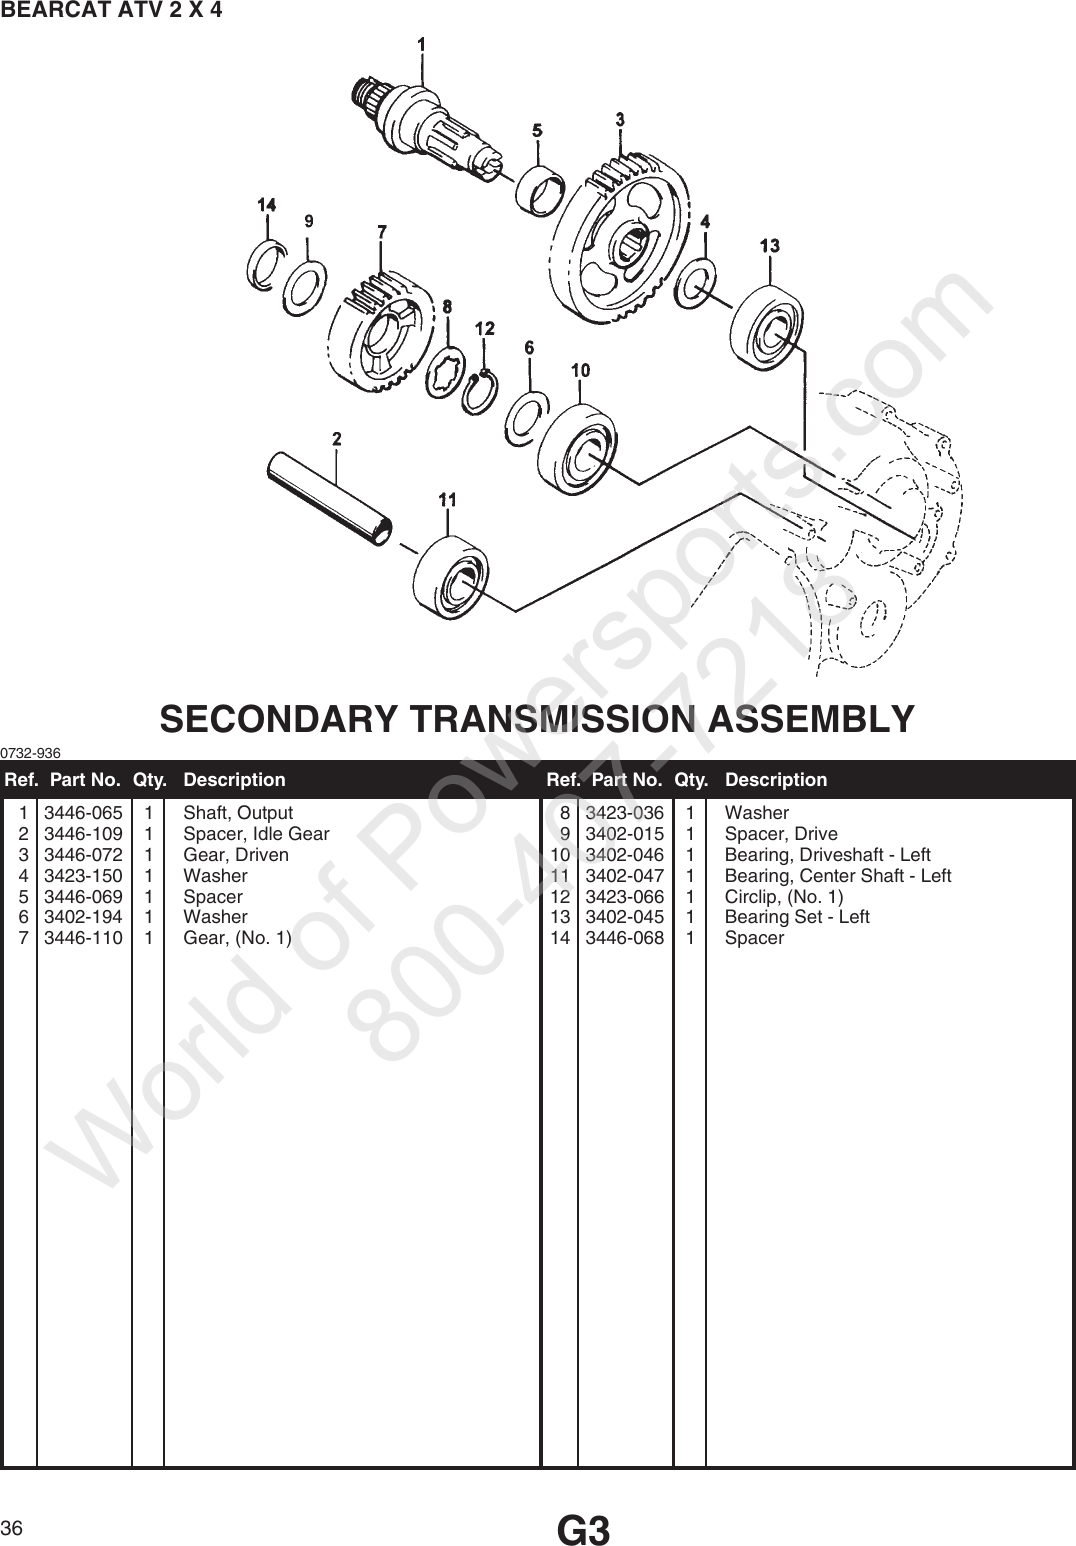 Arctic Industries Bearcat Atv 2X4 97A2A Ap Users Manual on